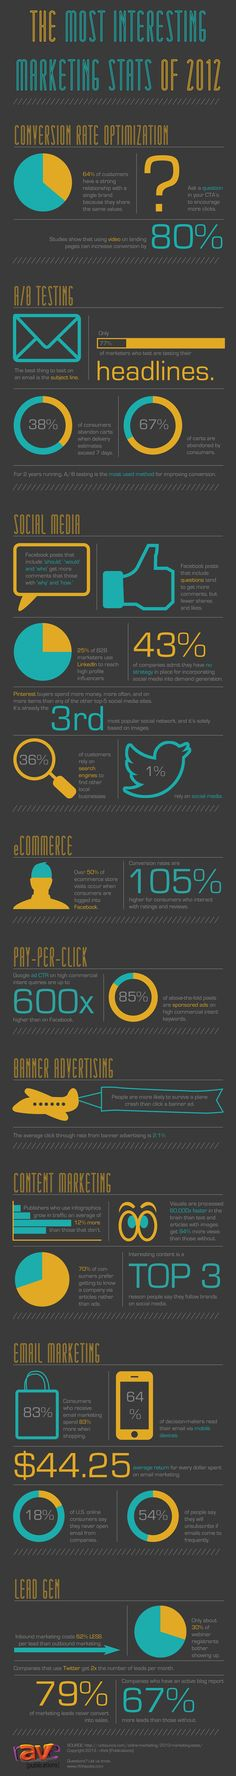 [INFOGRAPHIC] The Most Interesting Marketing Stats of 2012